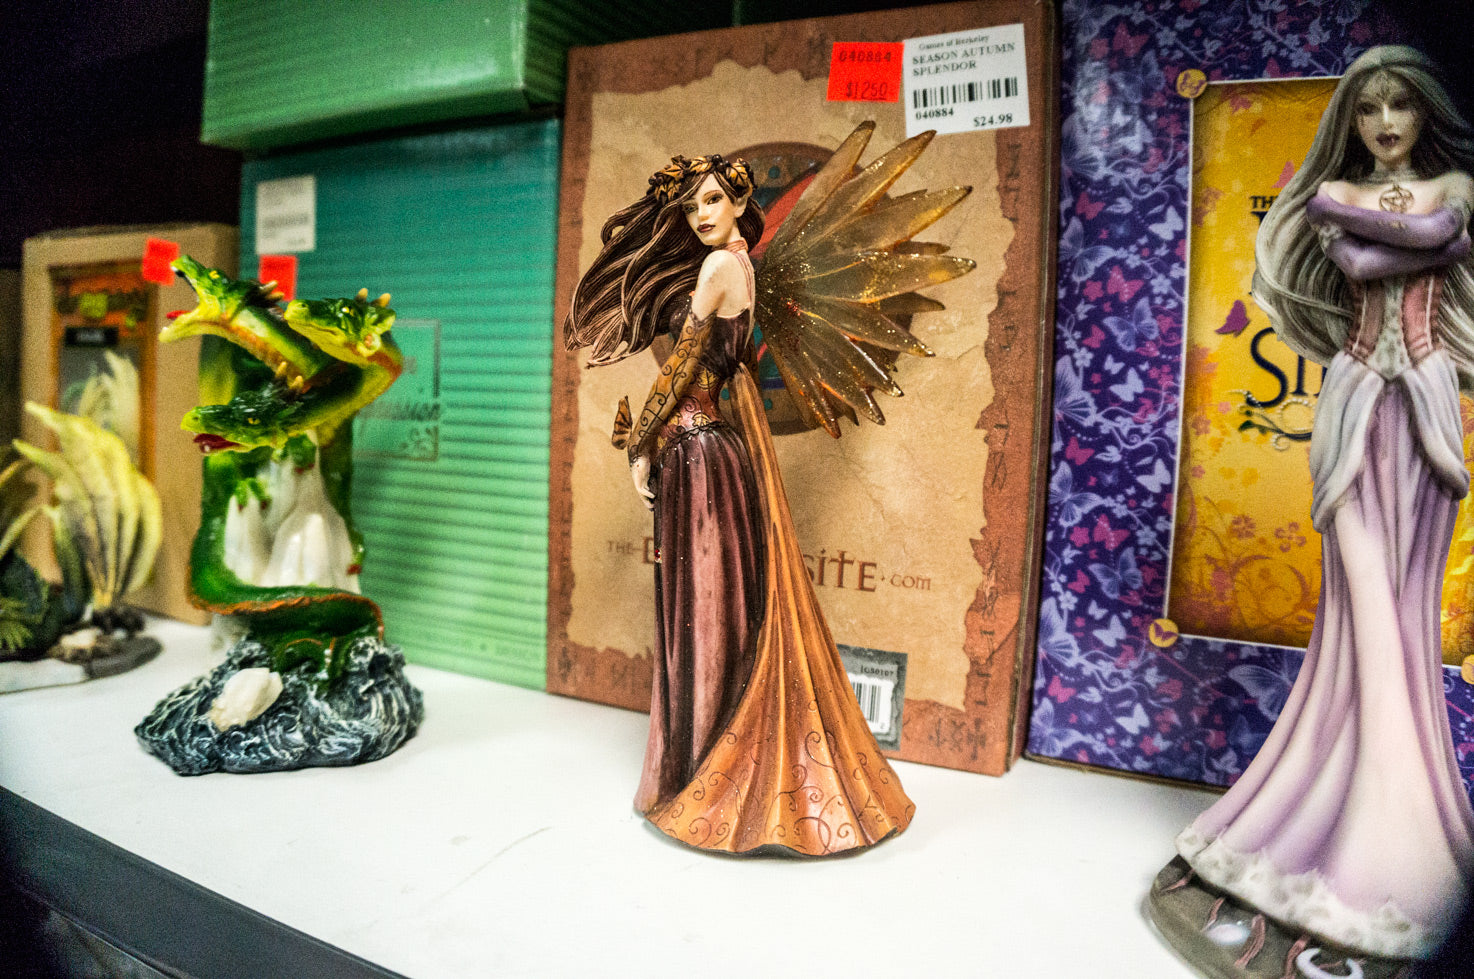 Collectible statues of dragons and fairies at Games of Berkeley Backroom Bargains